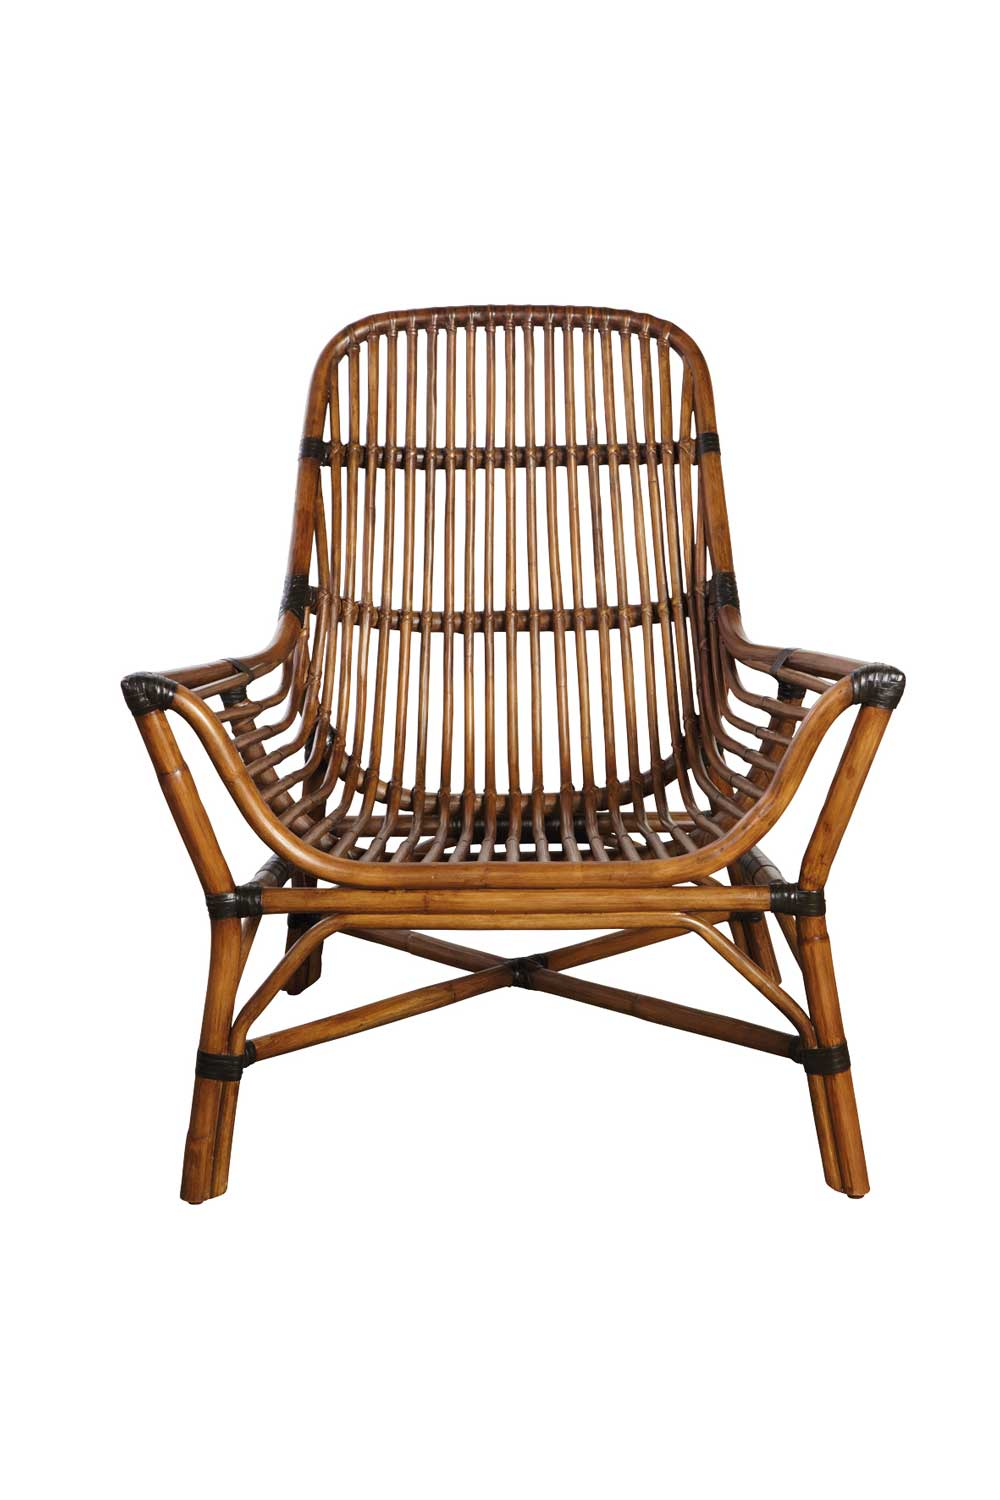 Image of   HOUSE DOCTOR Colony loungestol - naturfarvet rattan